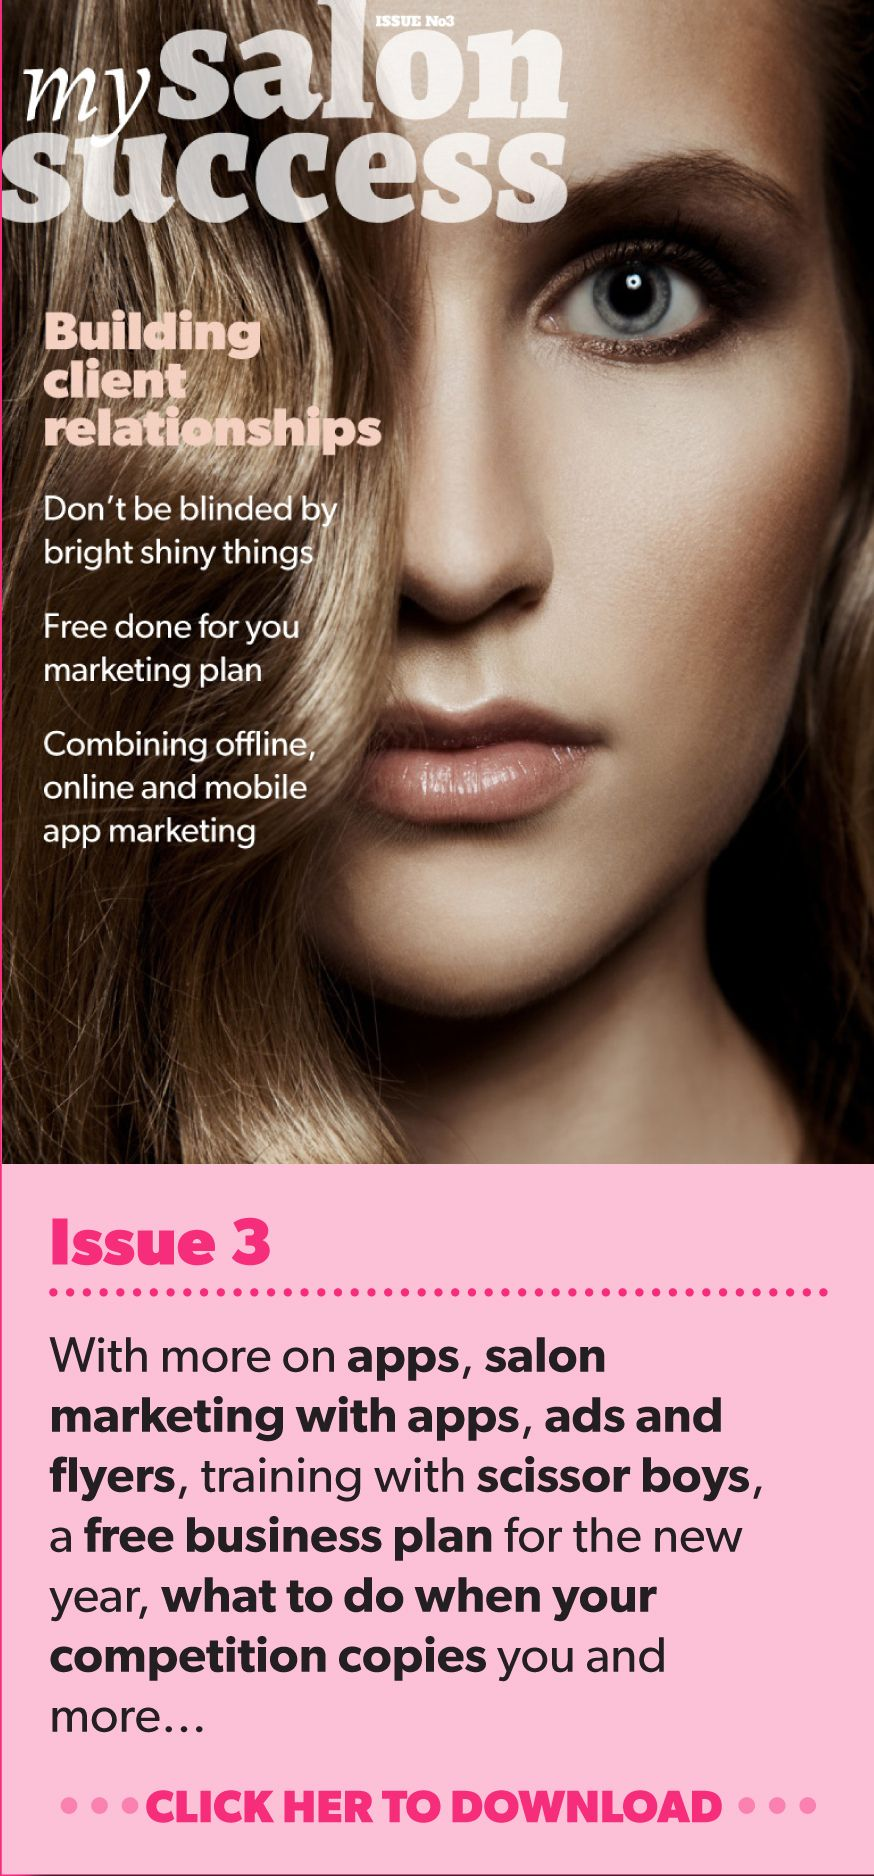 Issue 3 with more on apps, salon marketing with apps, ads